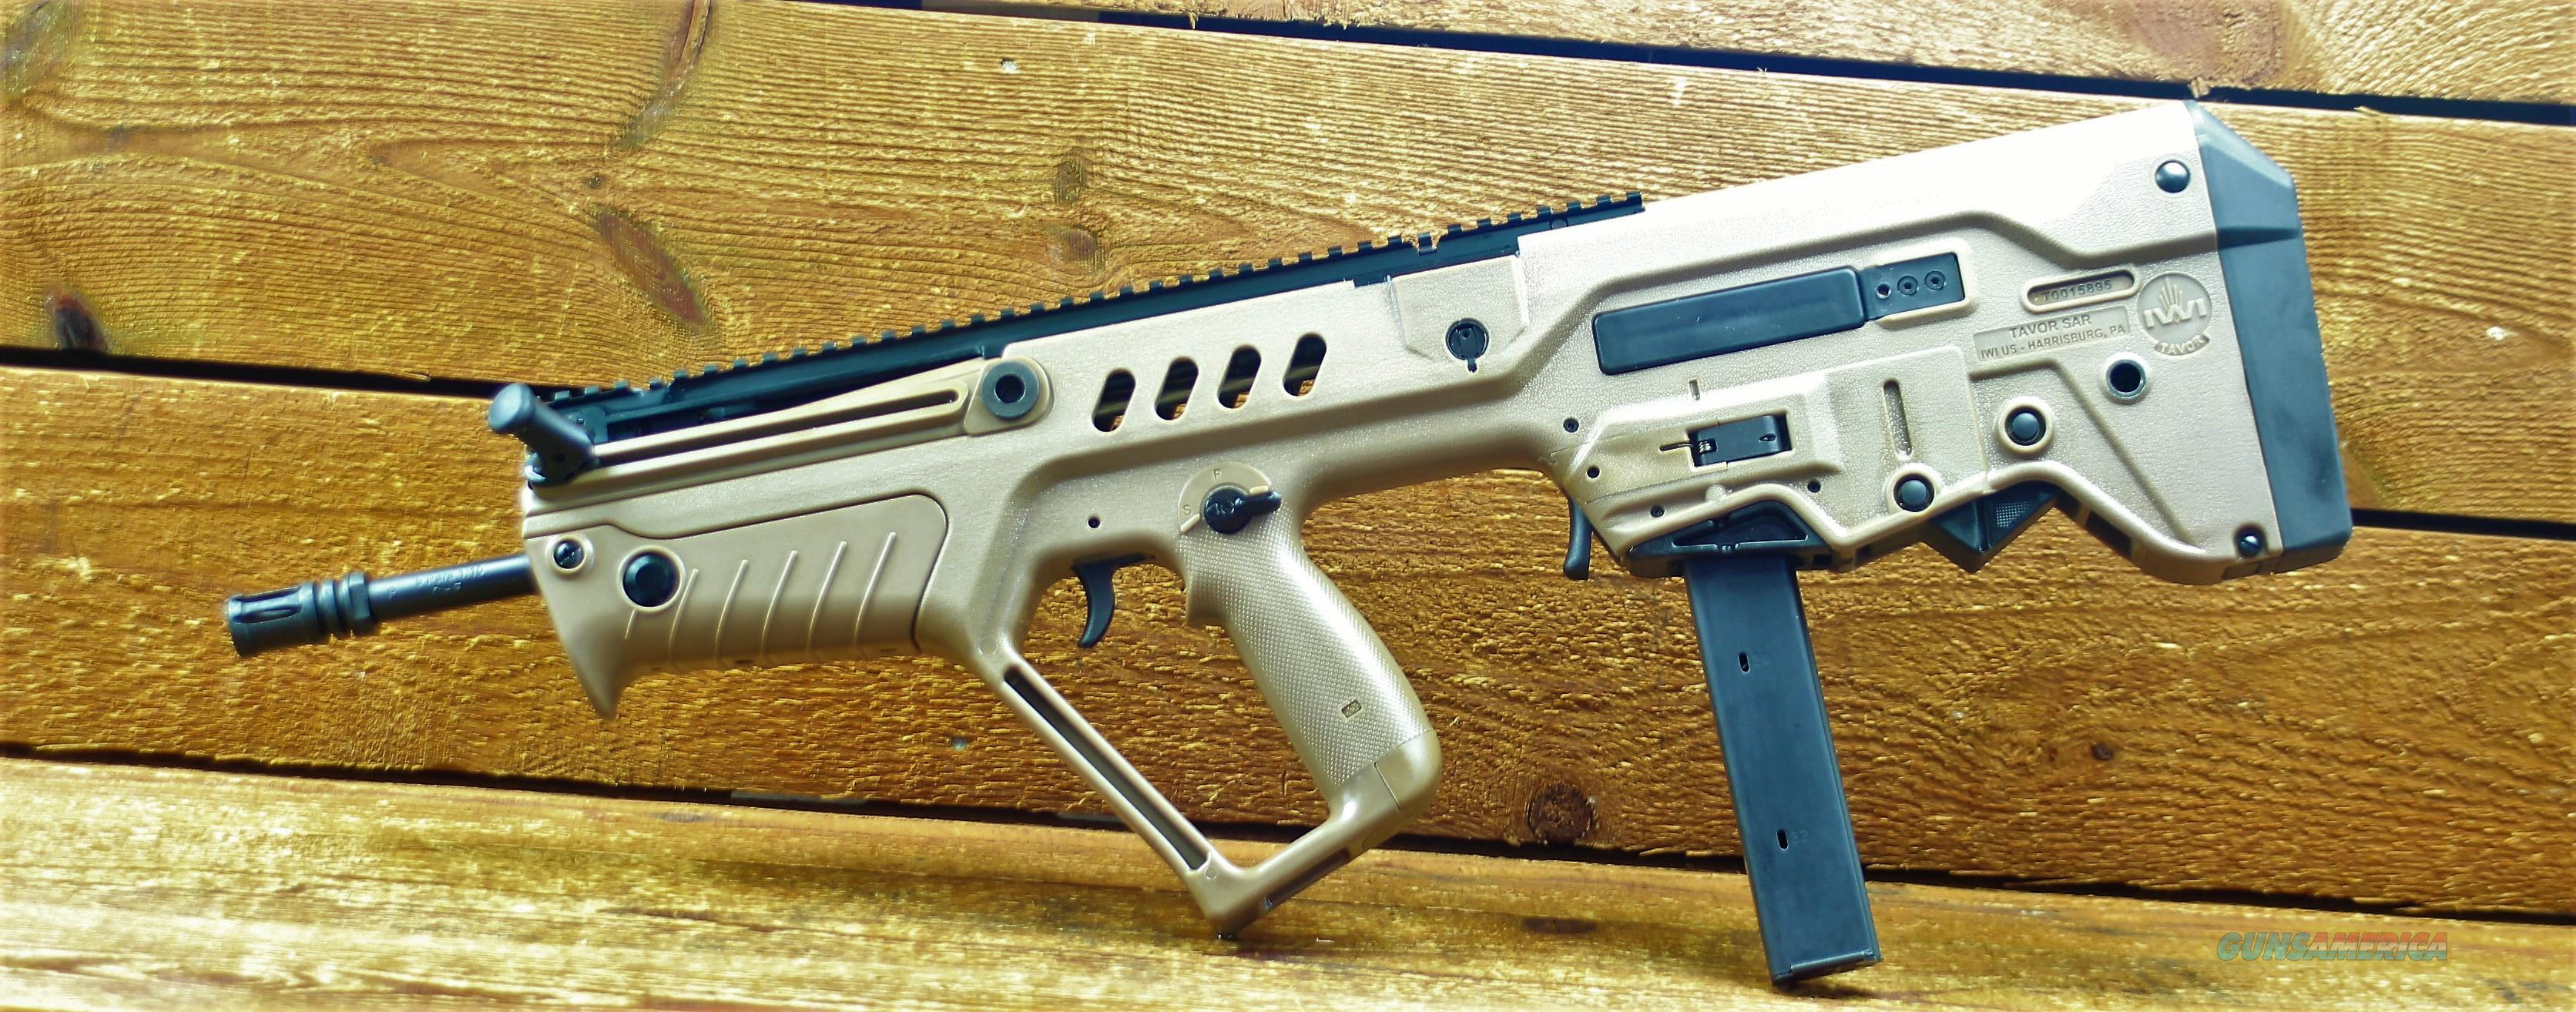 1.  EASY PAY $109 DOWN LAYAWAY 18 MONTHLY PAYMENTS IWI US, Inc TSFD17-9 9MM puppolymer bullpup  Accepts Colt AR15 9mm Magazine  SAR 9MM  FDE chrome lined barrel Tavor Flat Dark Earth 856304004684   Guns > Rifles > IWI Rifles